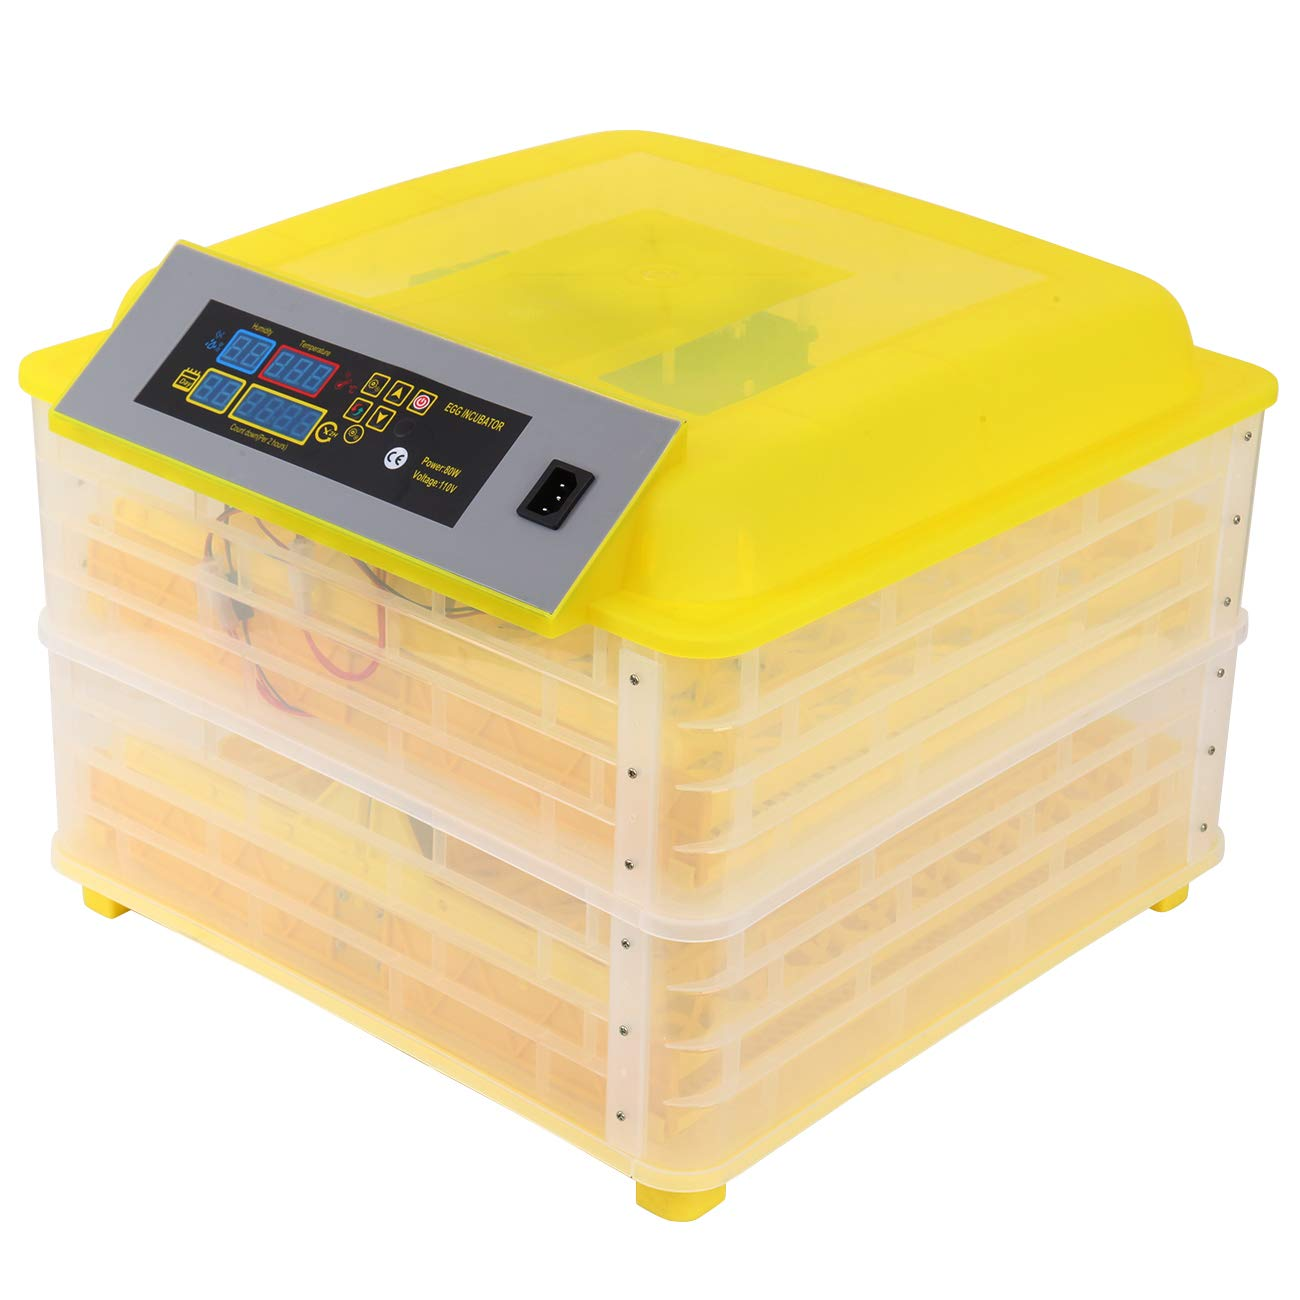 XuanYue Digital Egg Incubators 112 Eggs Incubator Automatic Turning Chicken Hatching Eggs Hatcher for Chicken Ducks Goose Poultry Pigeon Quail